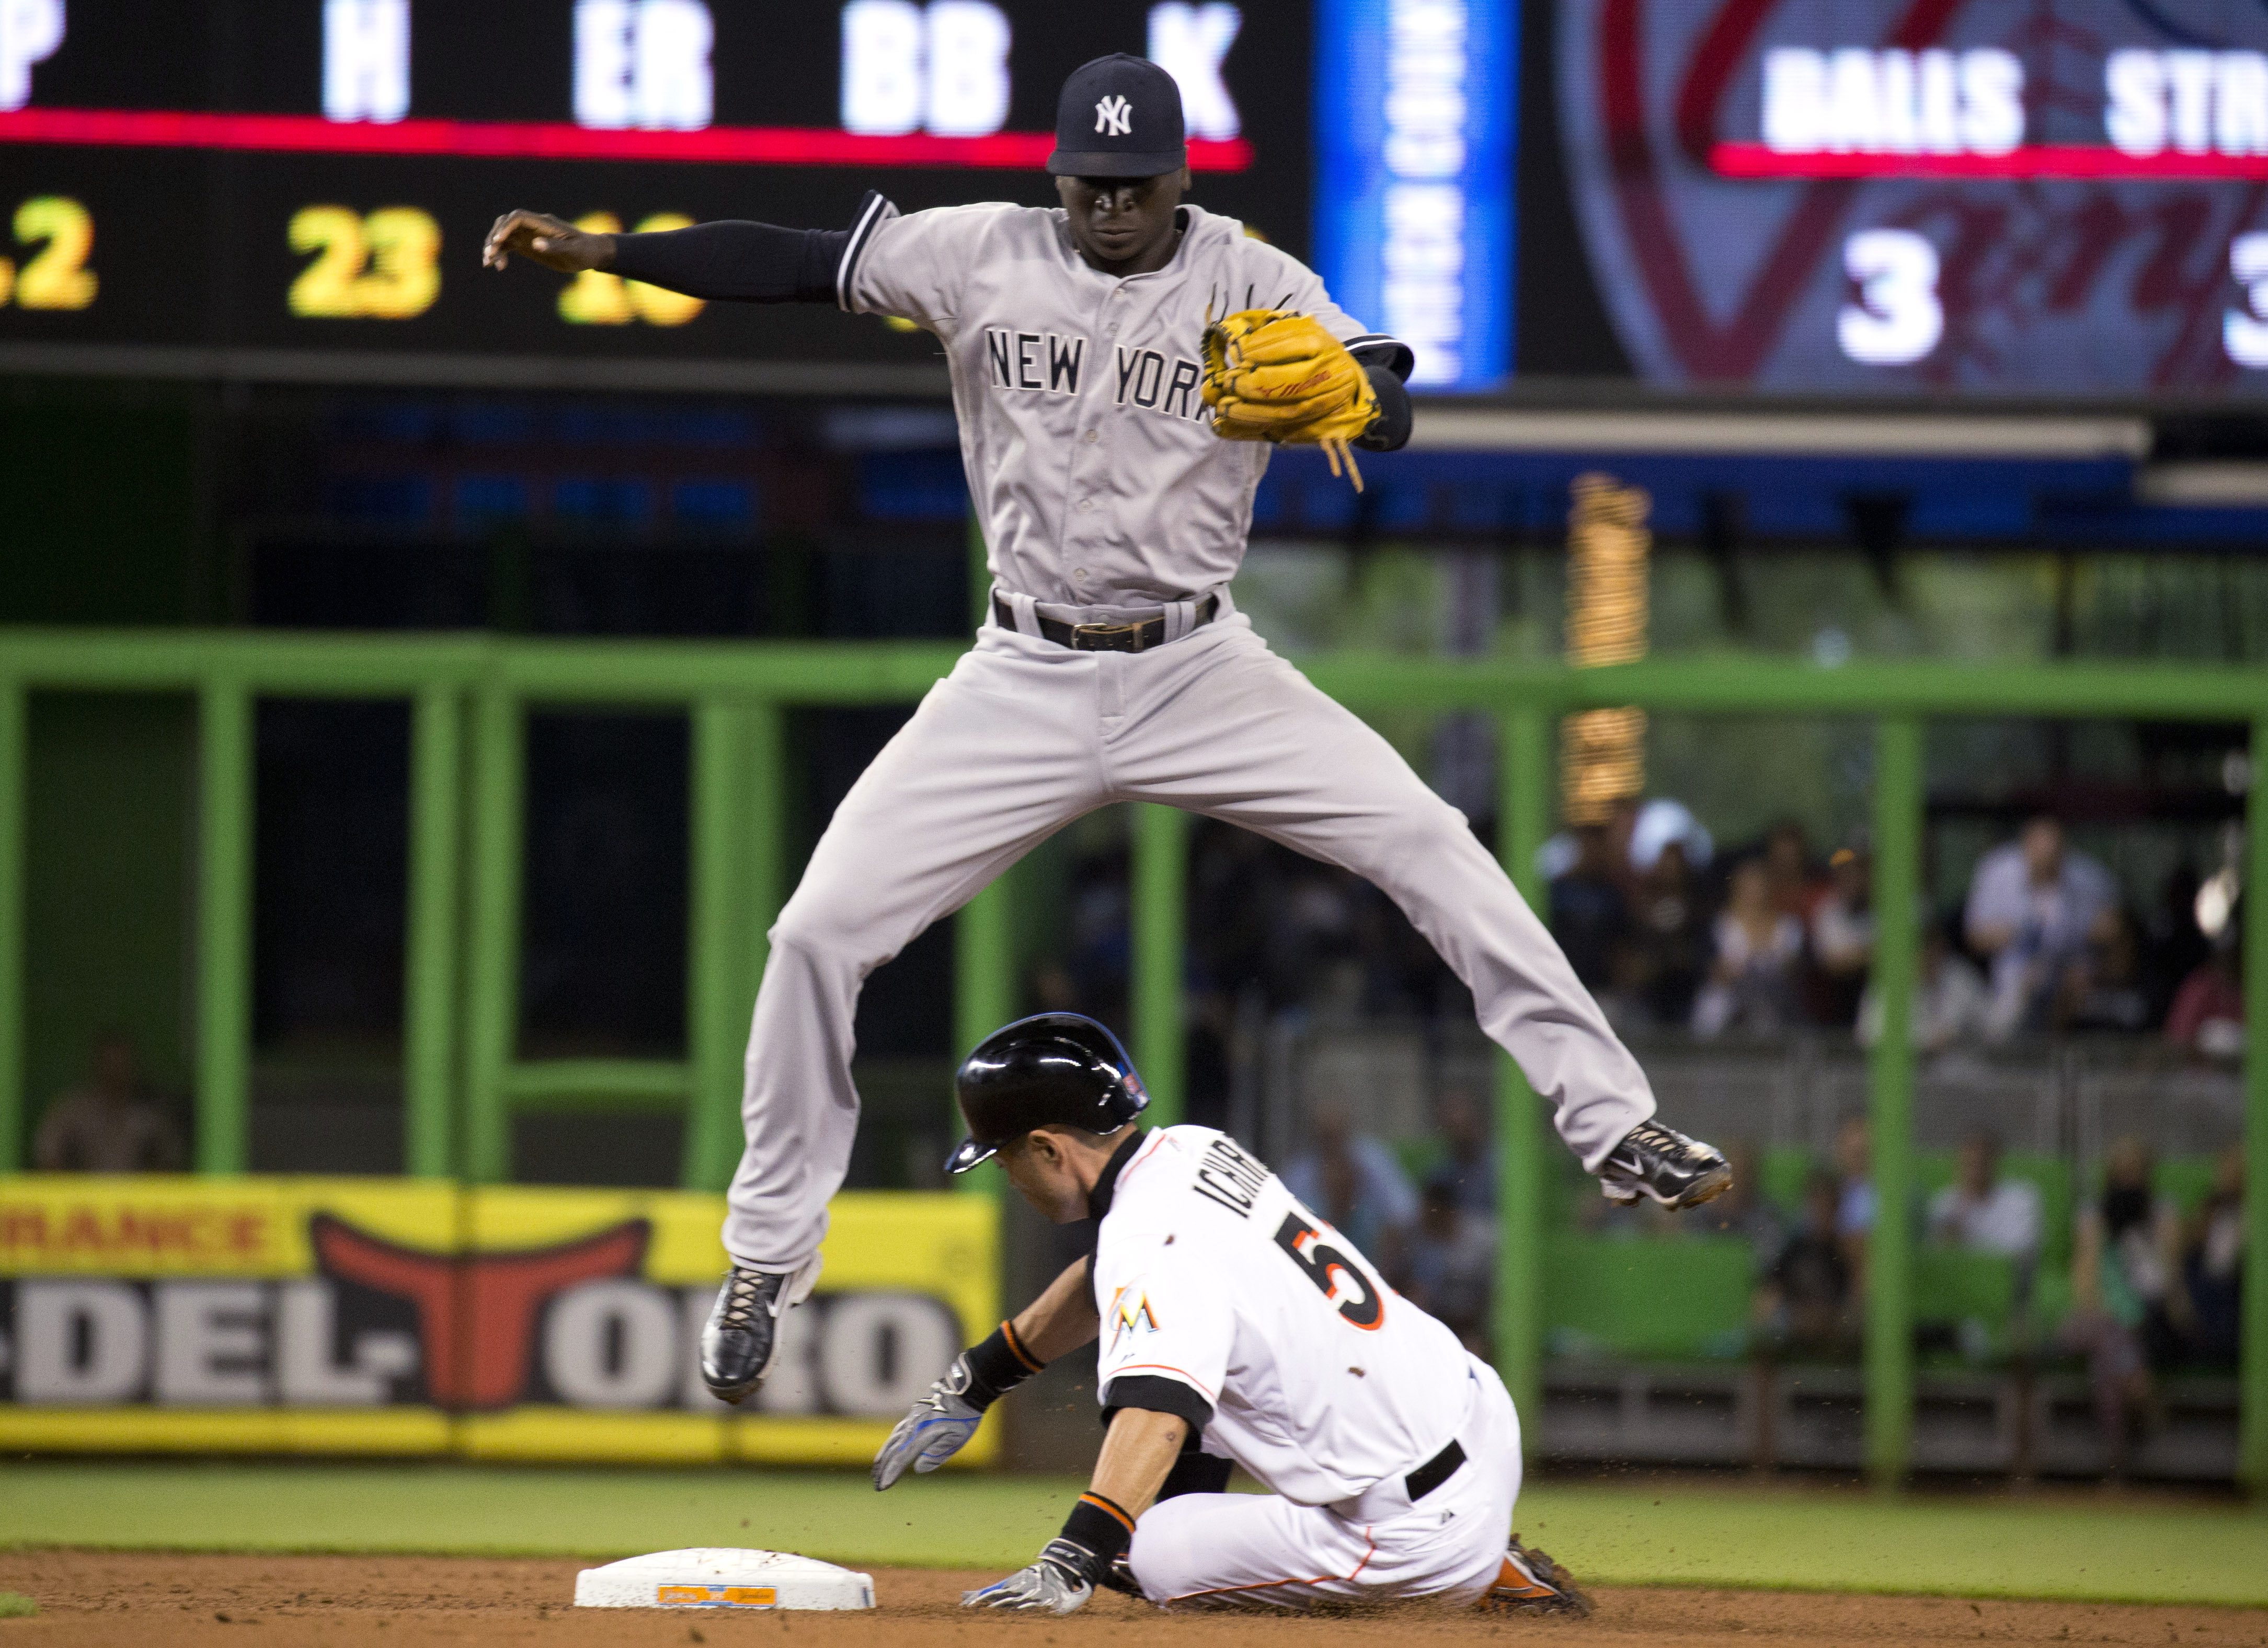 New York Yankees shortstop Didi Gregorius hops over Miami Marlins' Ichiro Suzuki (51) after forcing him out at second during the first inning of a baseball game in Miami, Monday, June 15, 2015. (AP Photo/J Pat Carter)